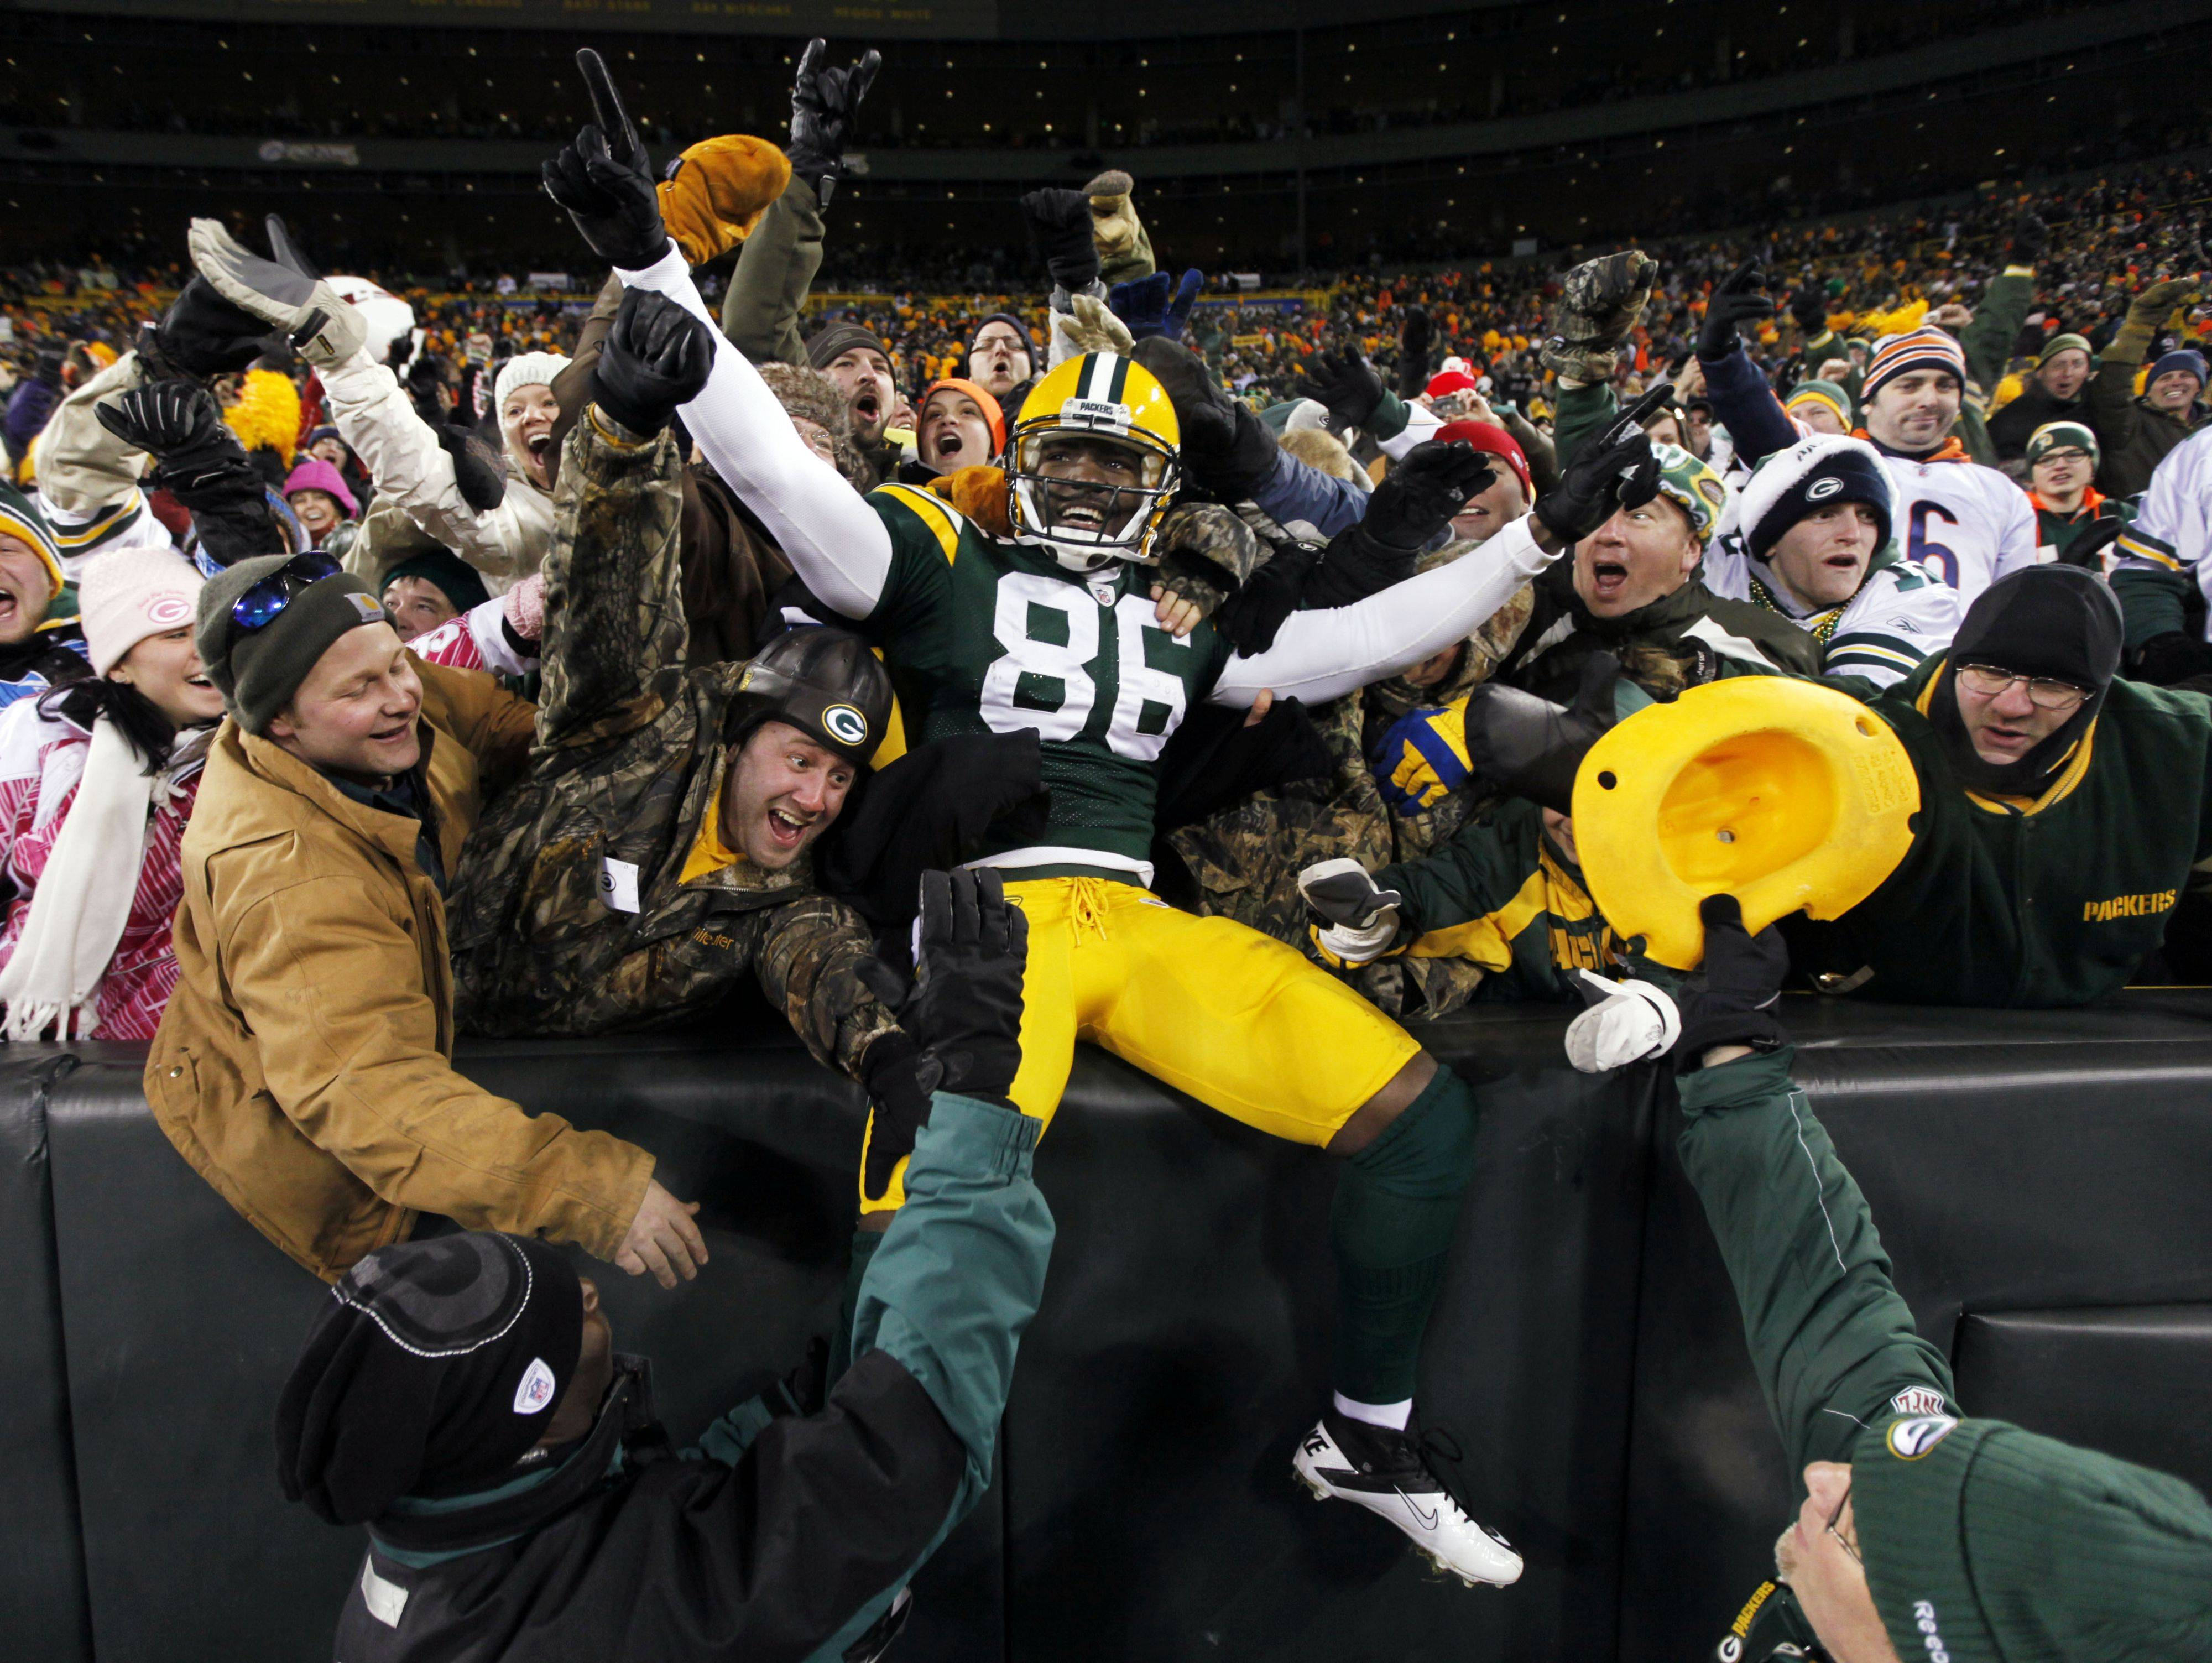 Green Bay Packers' Donald Lee celebrates with fans after catching a touchdown pass during the second half.